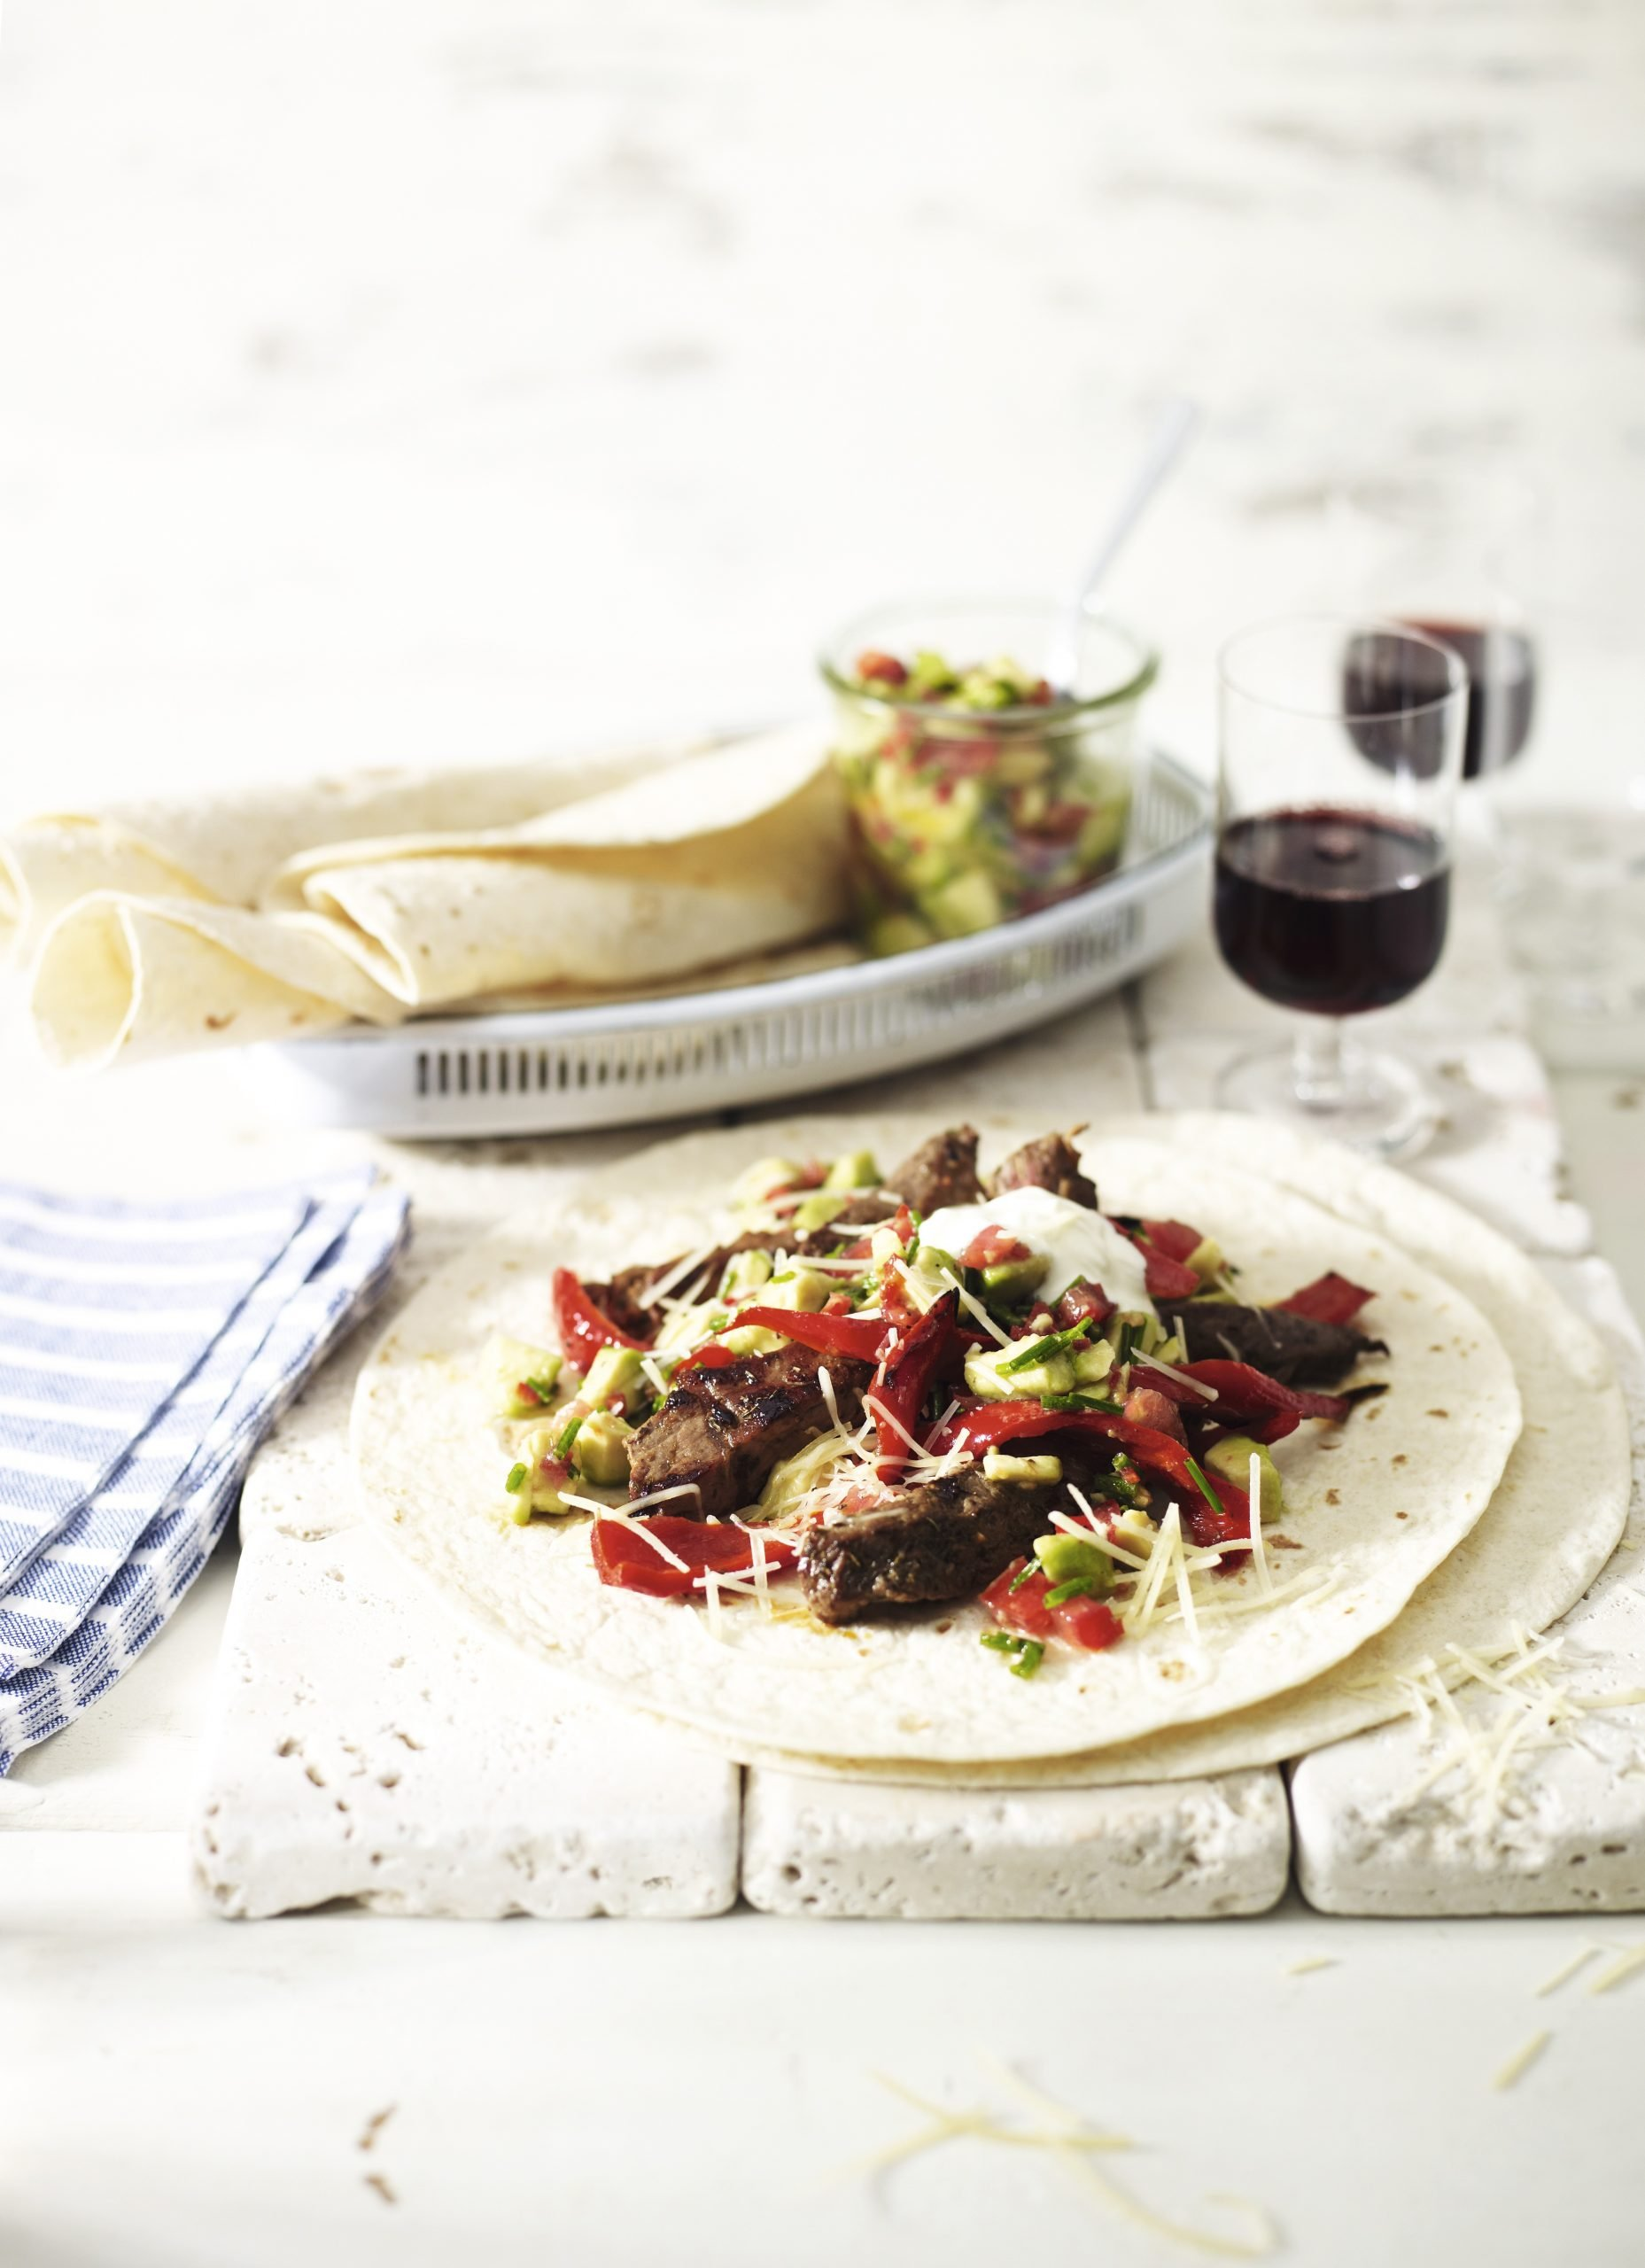 Recipe: Simple steak fajitas with avocado salsa